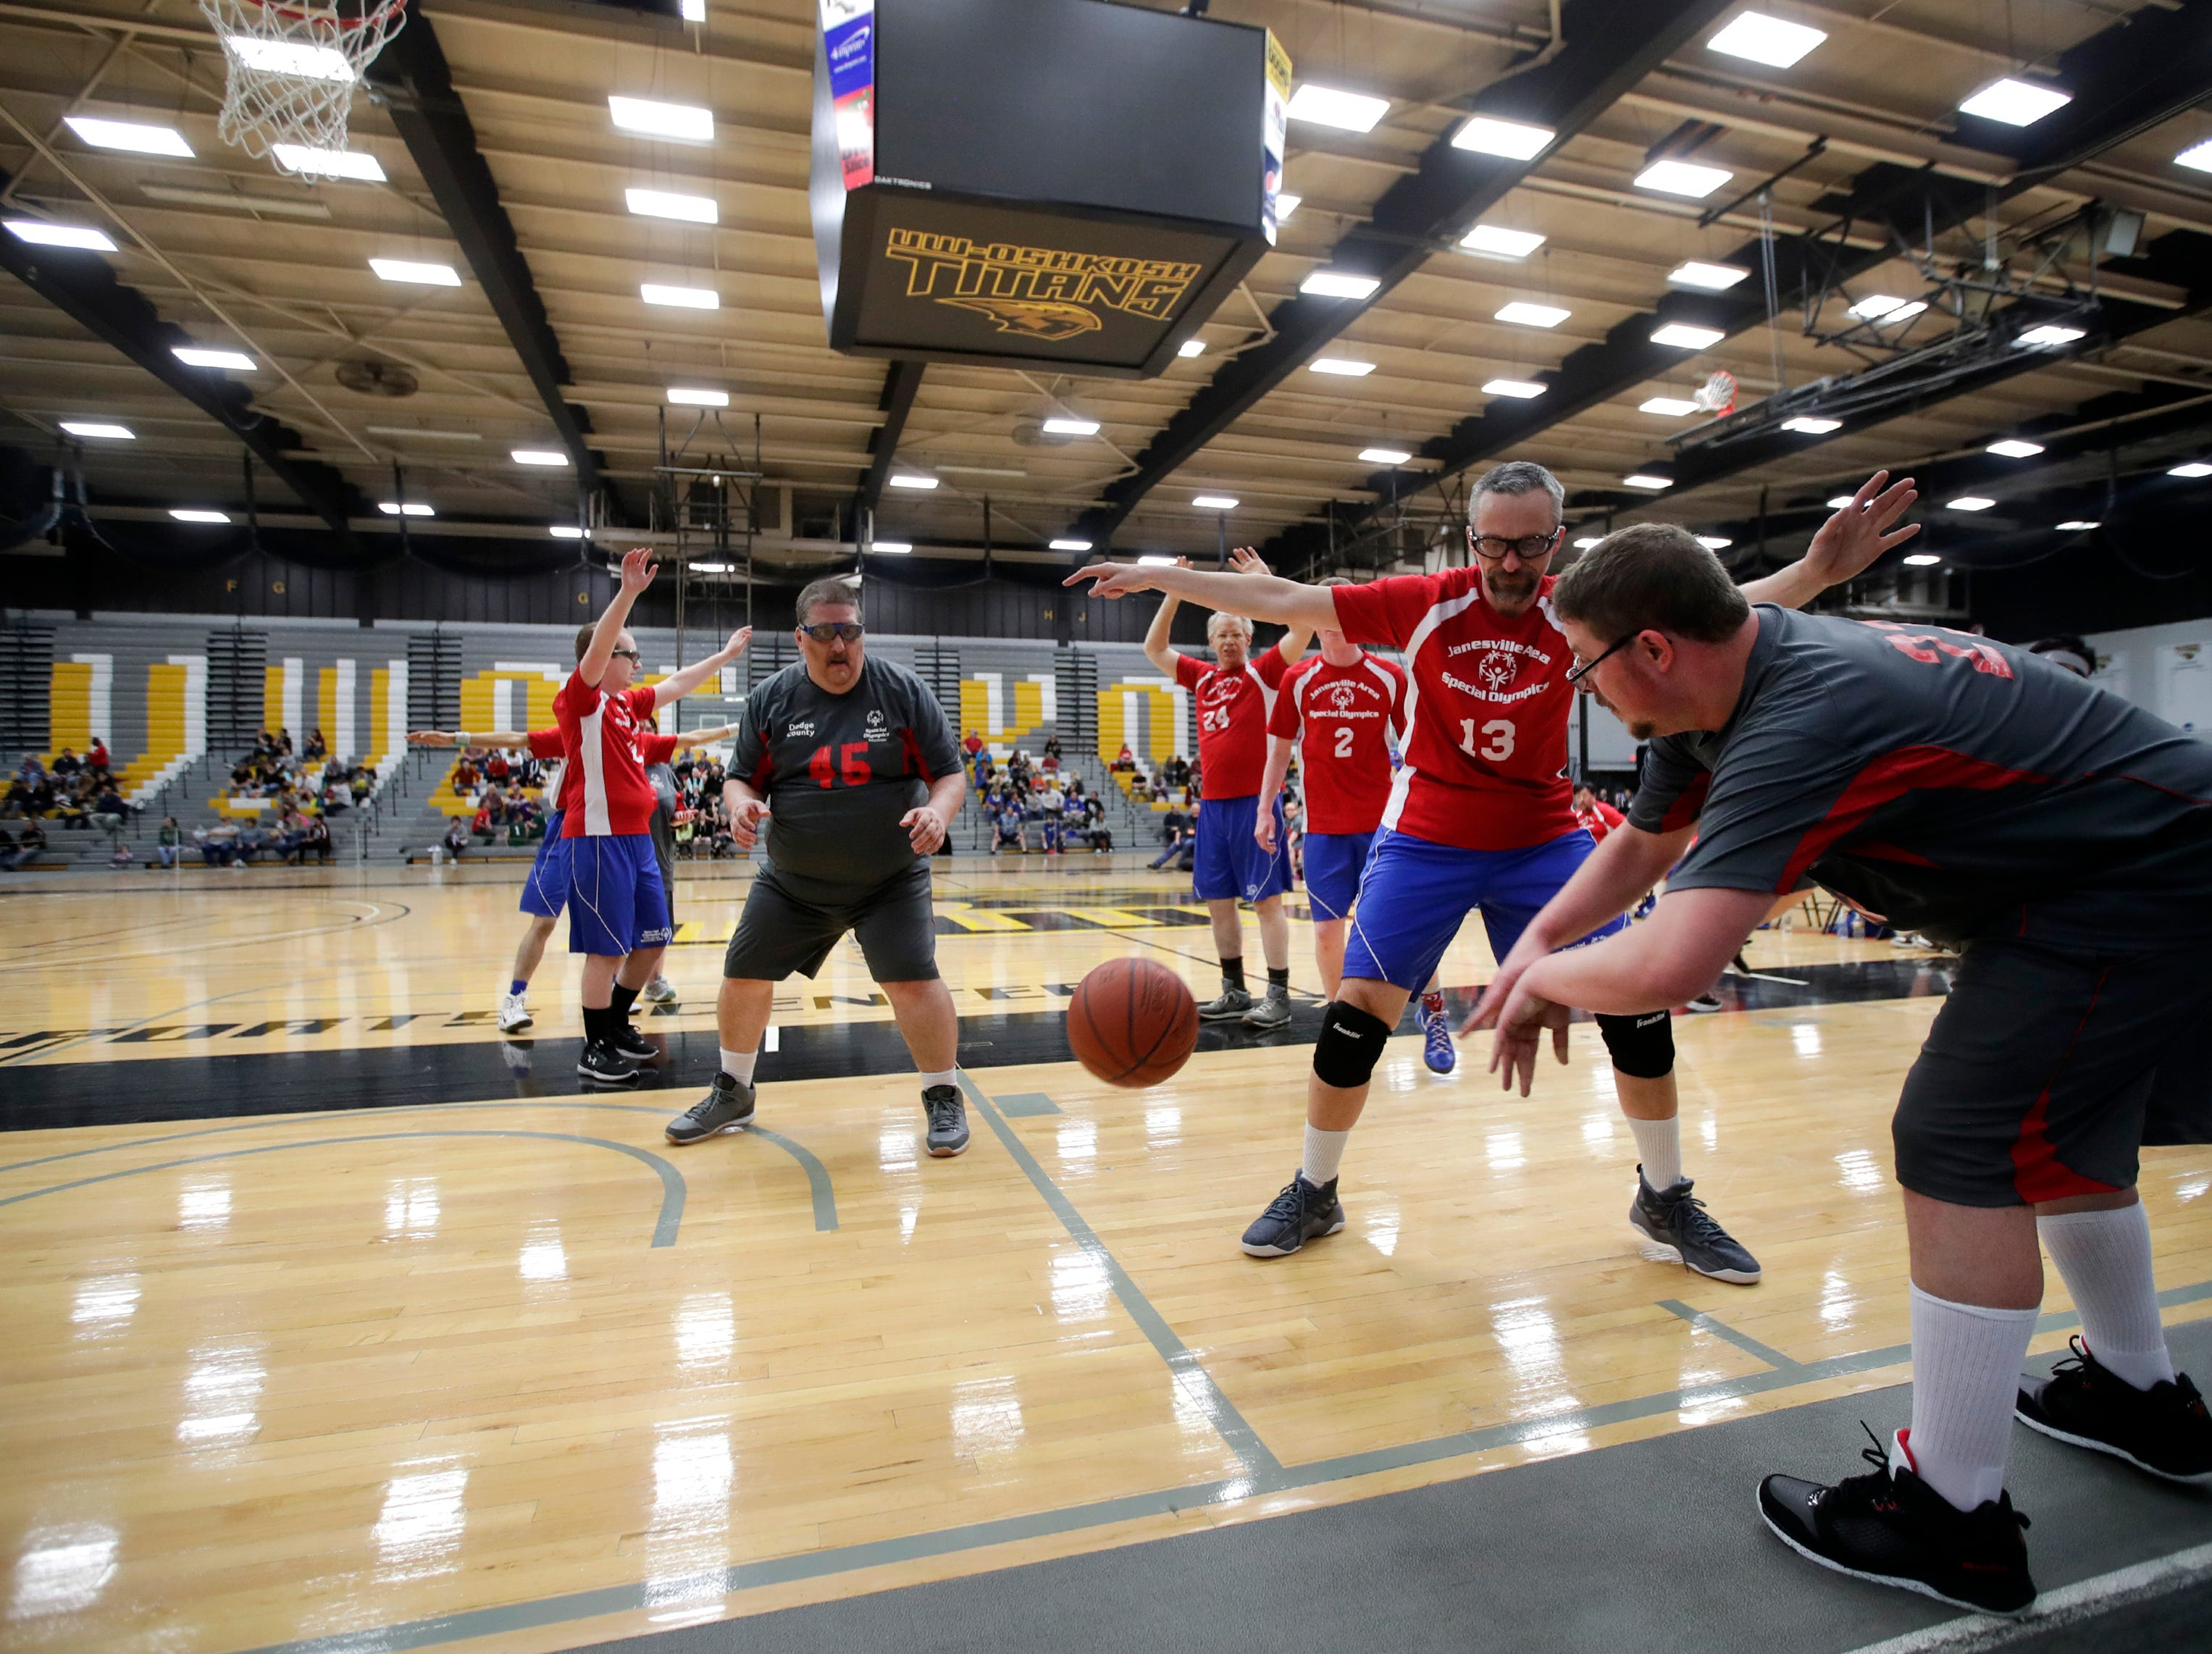 Dodge County Eagles' Allen Lynard gets a pass off to teammate Mike Huebner while playing against the Janesville Jets during the 2019 Special Olympics State Indoor Sports Tournament Saturday, April 6, 2019, at the Kolf Sports Center in Oshkosh, Wis. Danny Damiani/USA TODAY NETWORK-Wisconsin